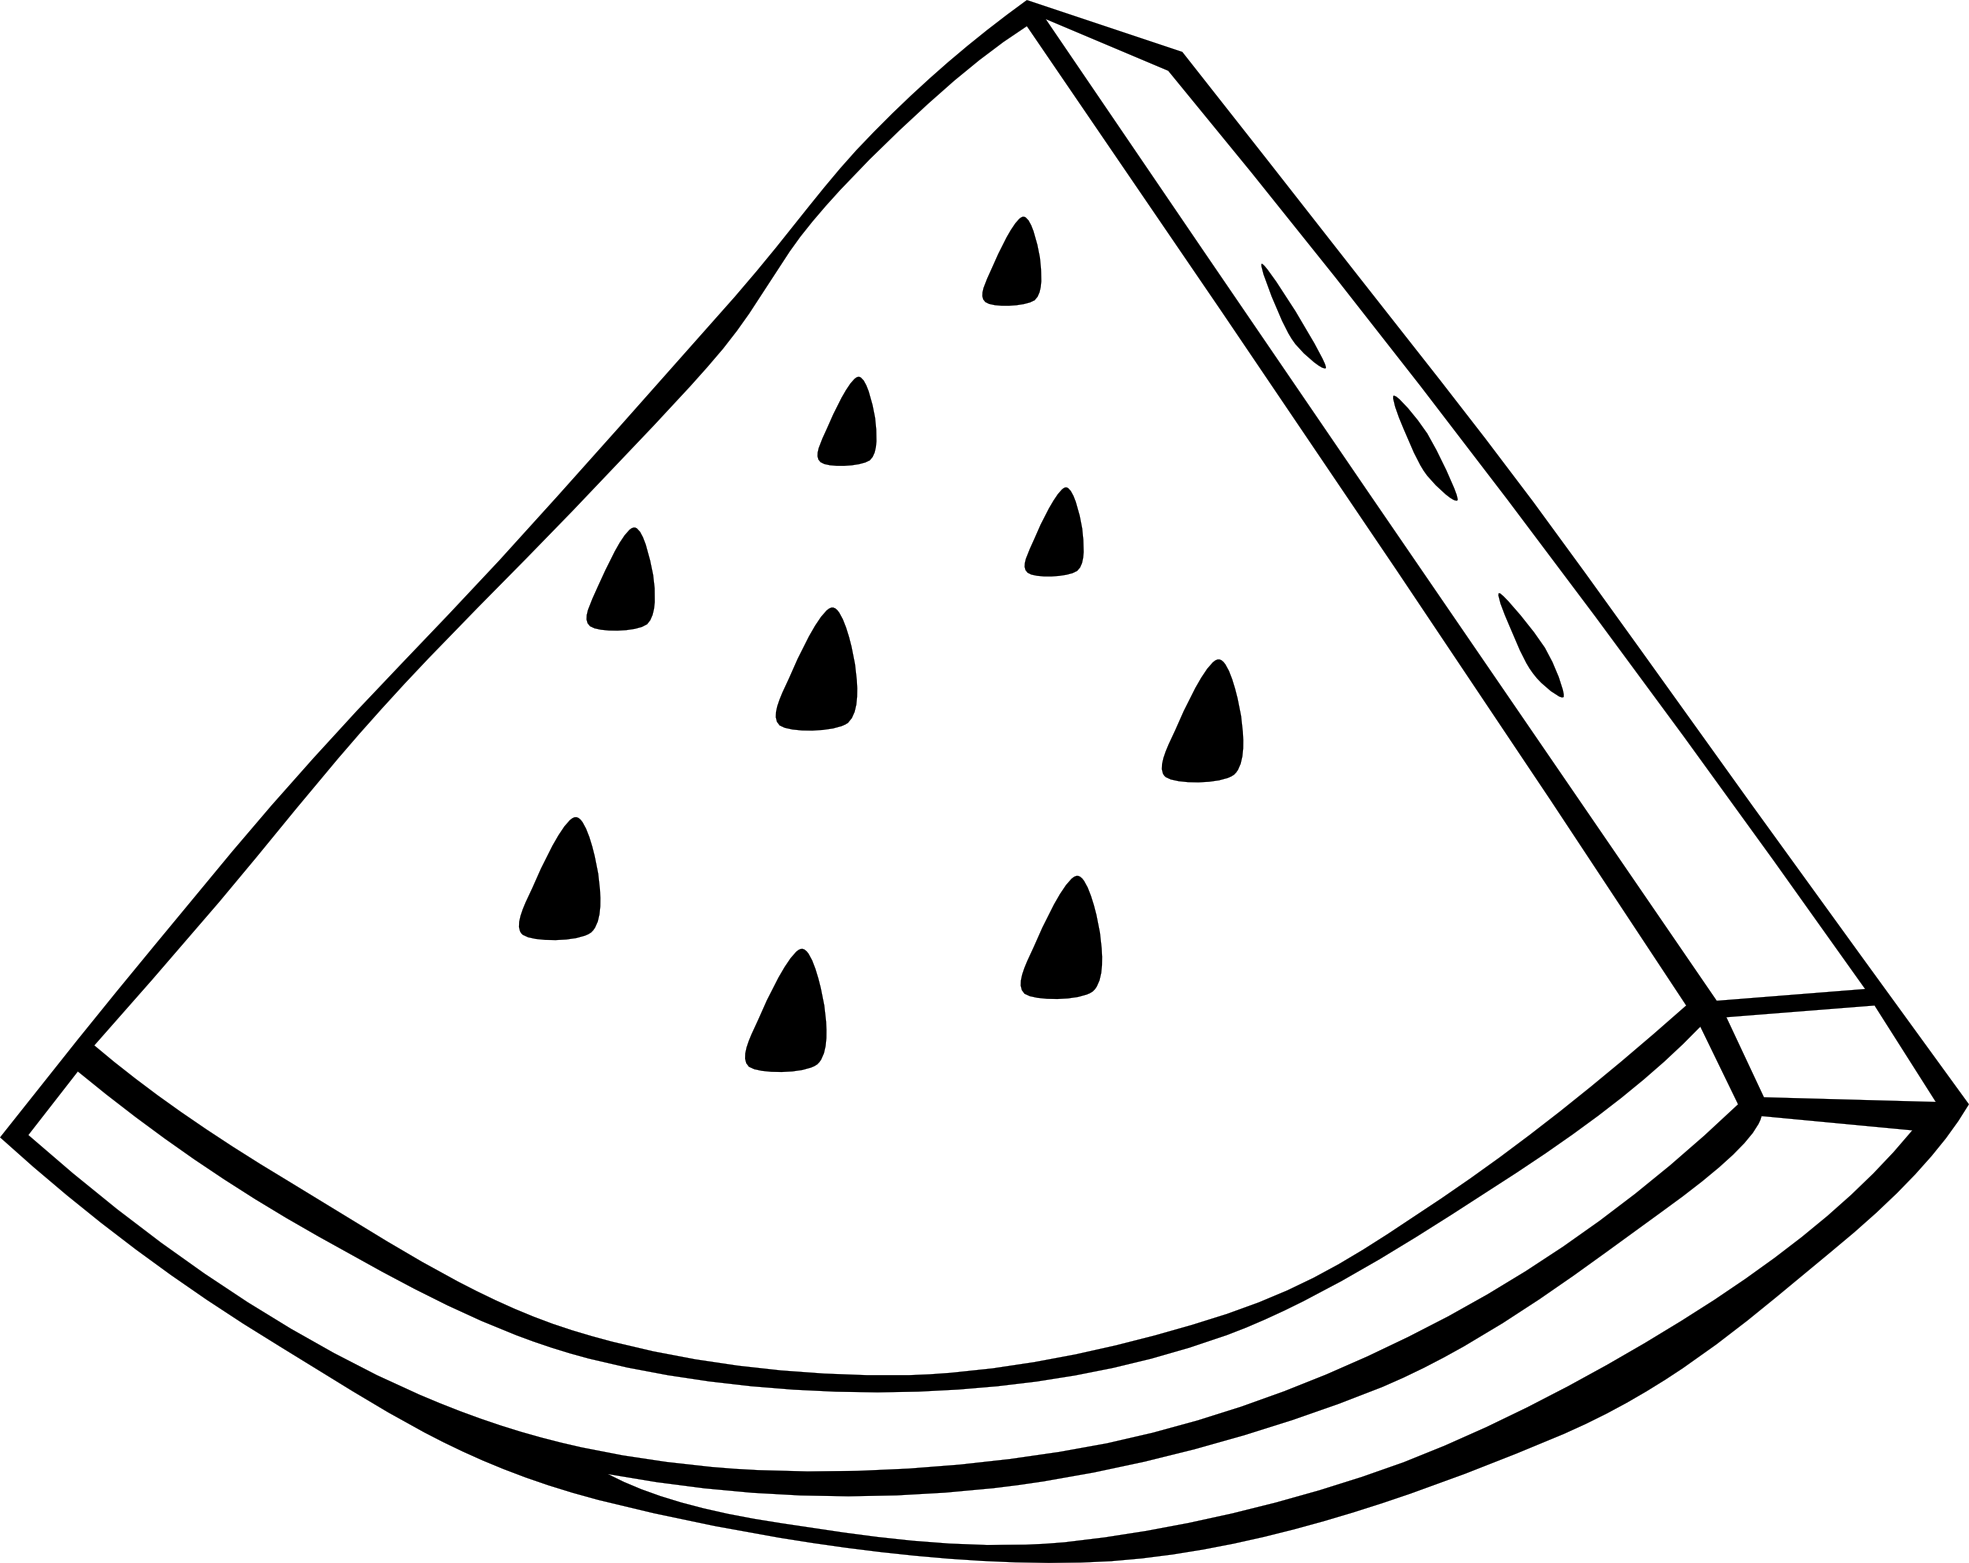 Watermelon slice drawing free download best watermelon